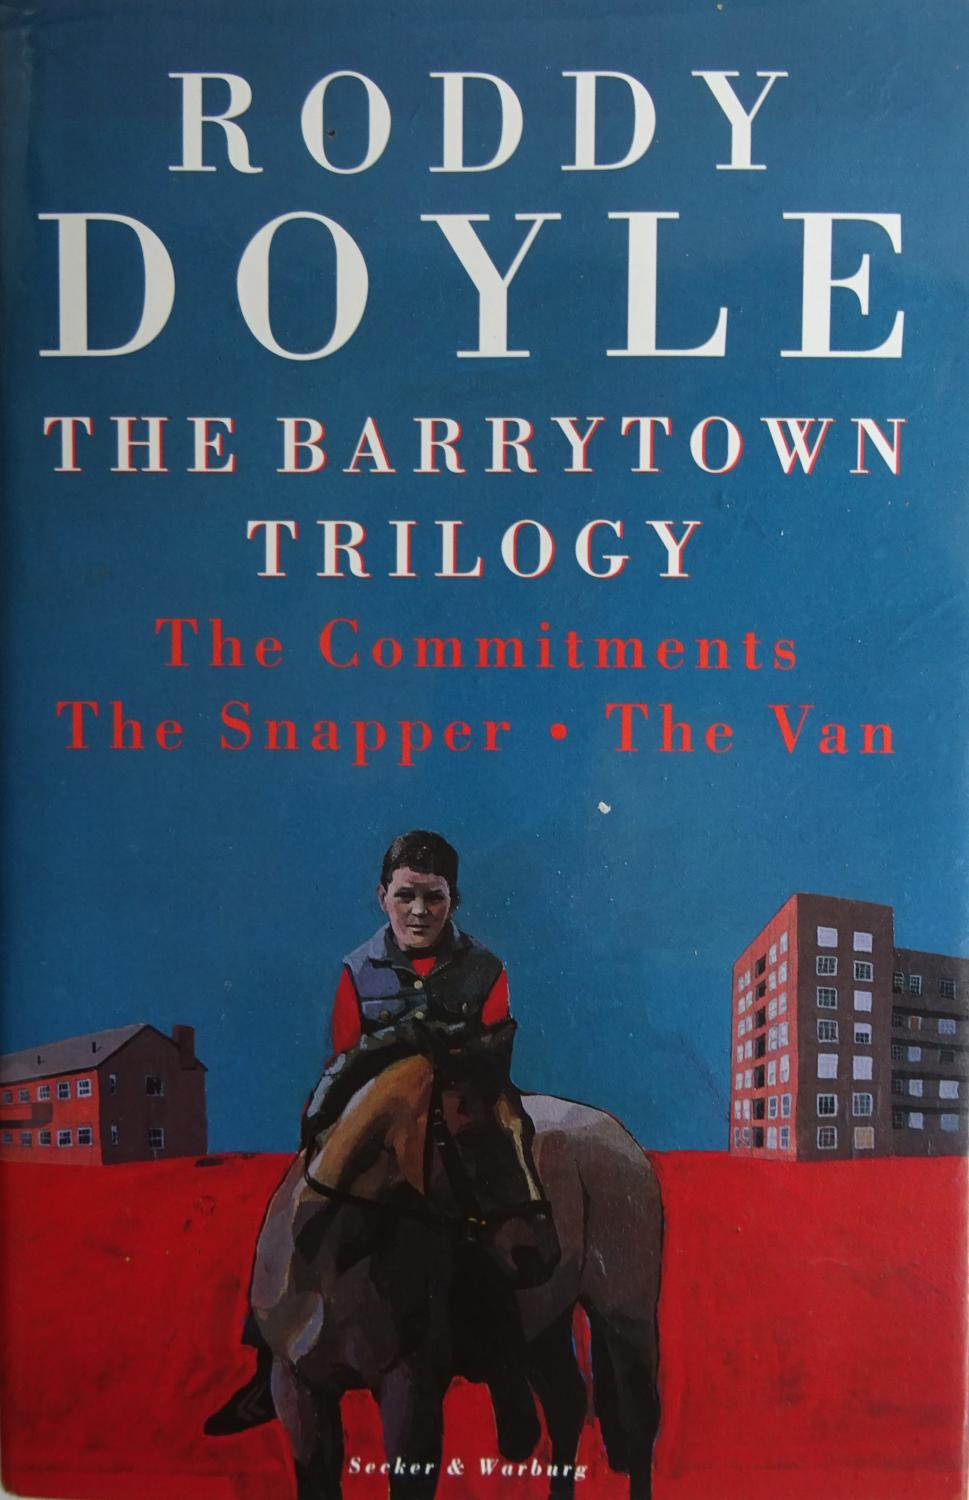 an analysis of the snapper by roddy doyle Booktitle: the snapper author: roddy doyle published by: vintage year of publication: 1990 literary analysis summary present a summary of the novel using no fewer than 200 words and no more than 300 words.